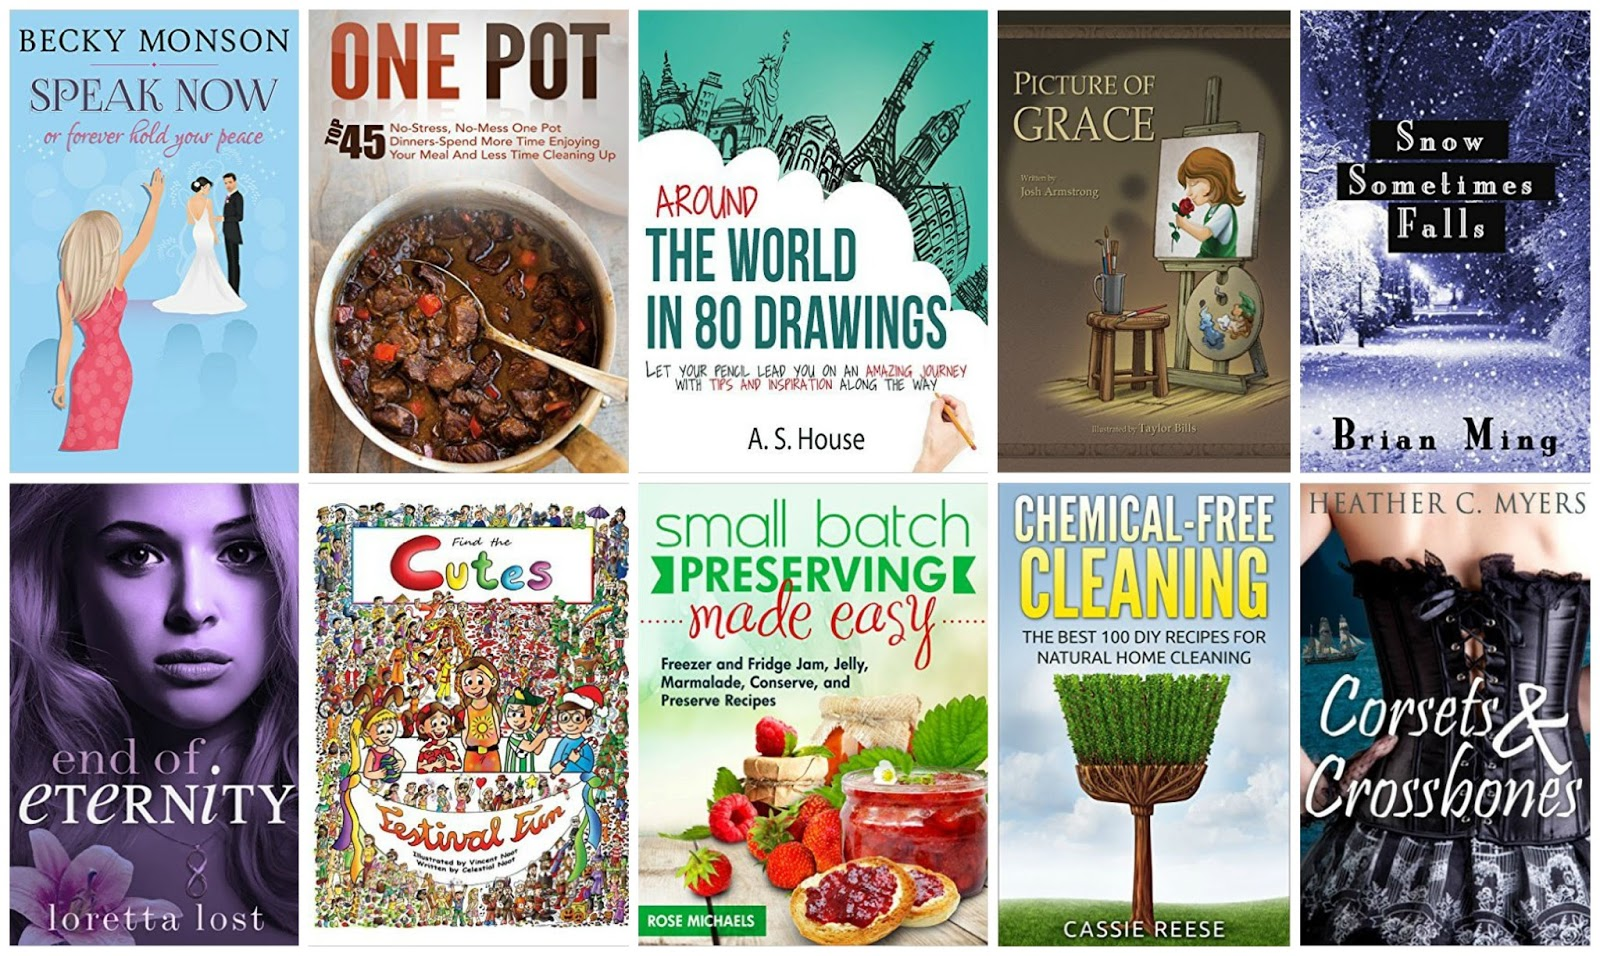 10 Free Kindle Books 9-10-15